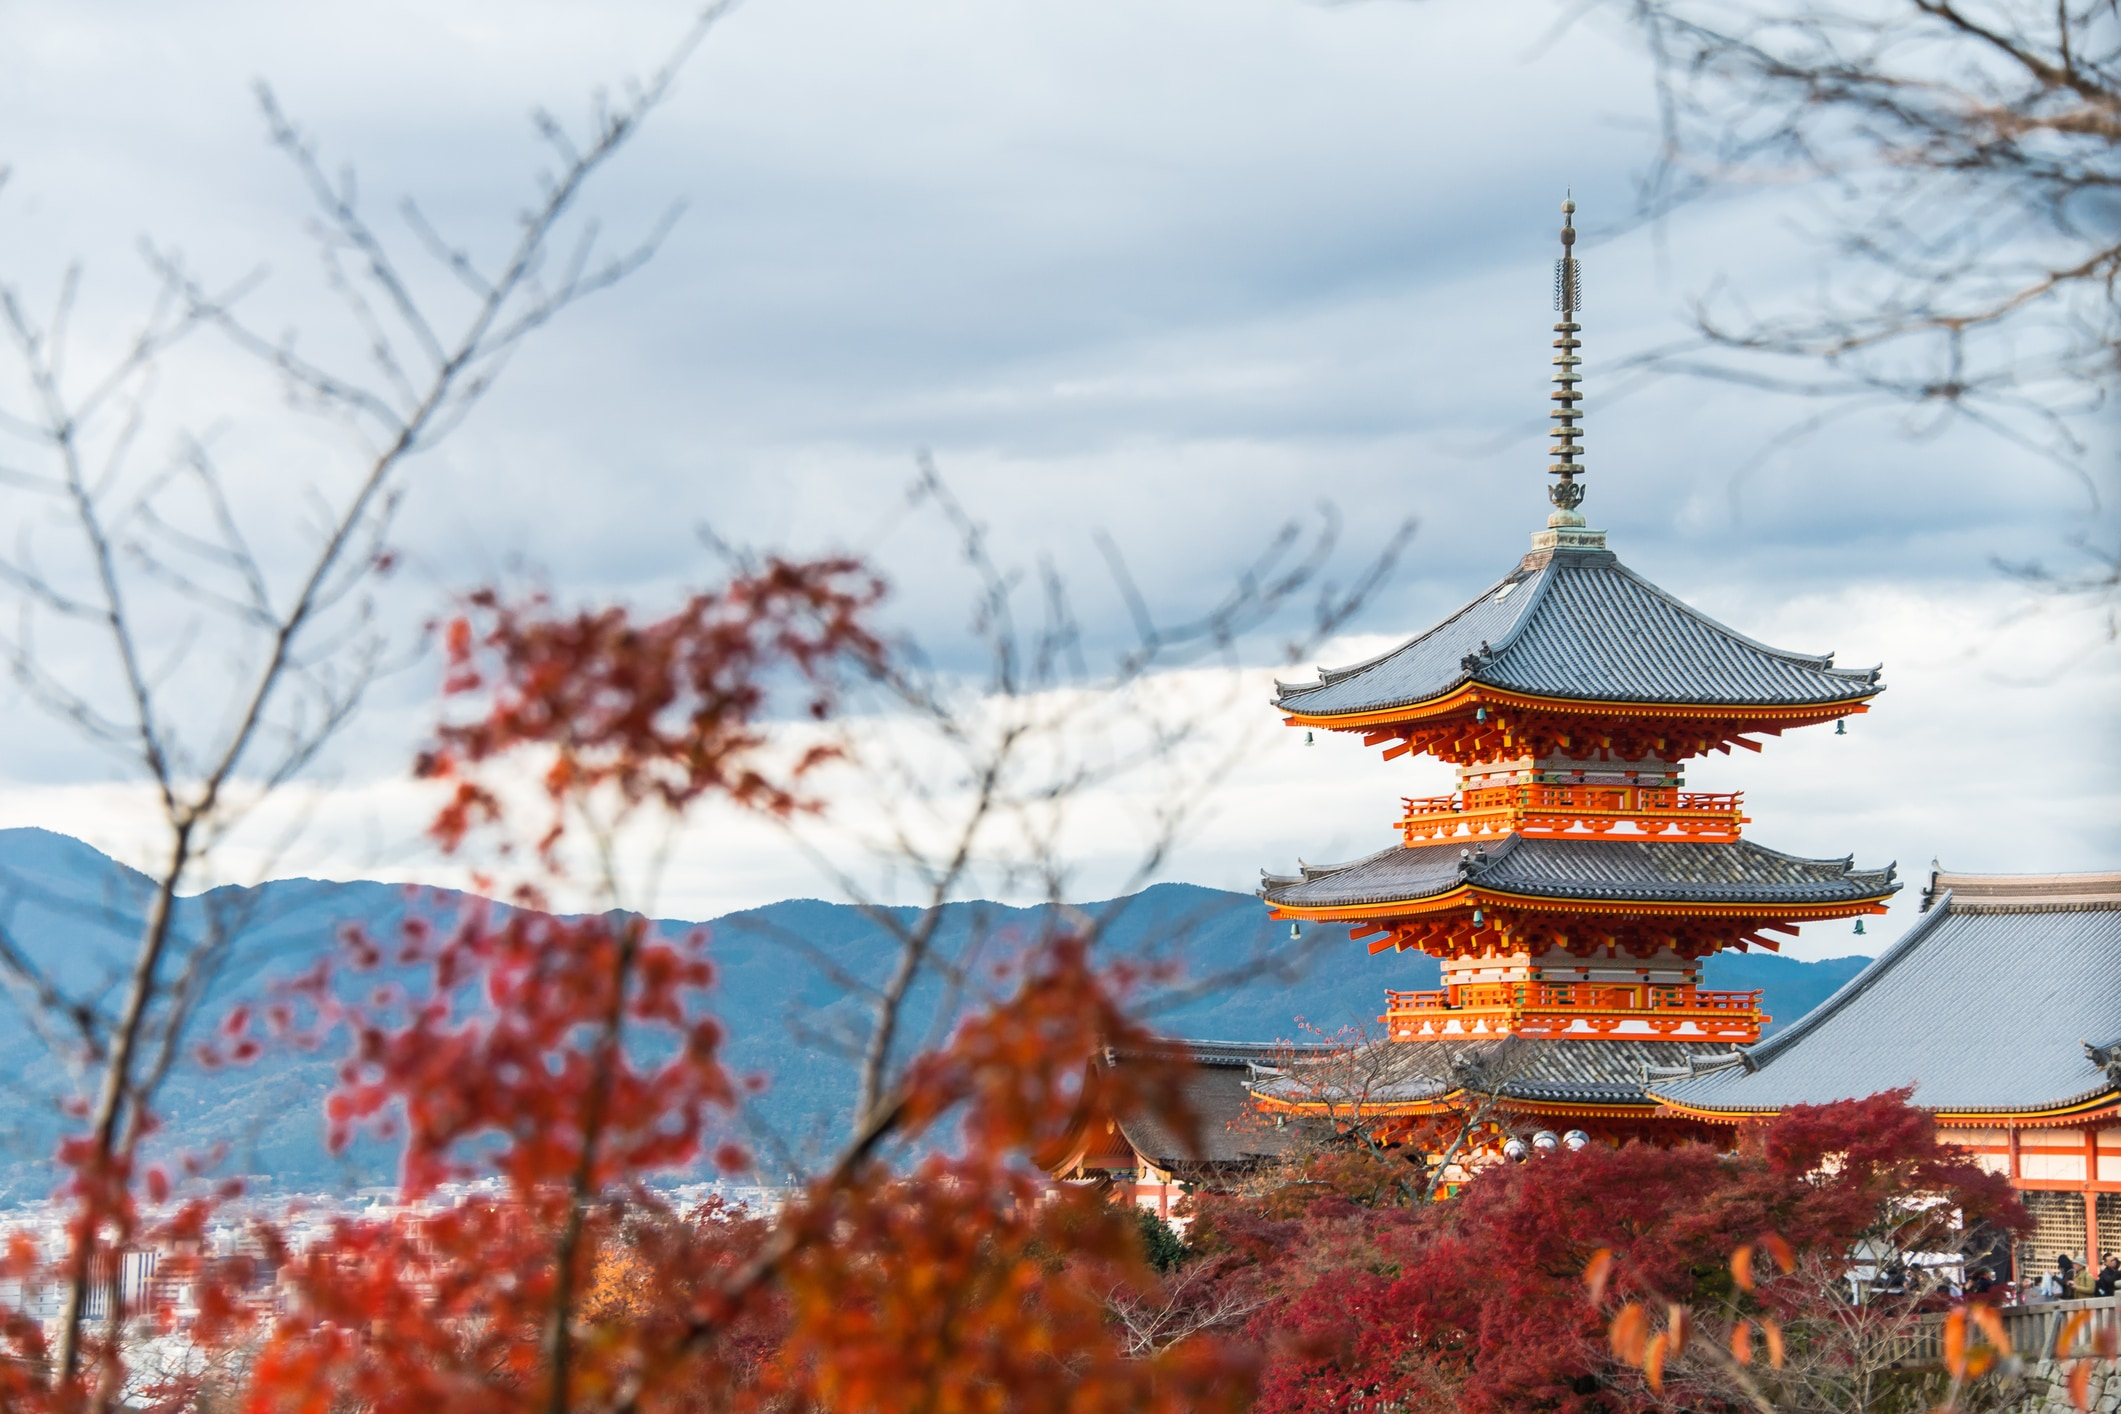 beautiful Japanese landscapes Kiyomizu-dera Pagoda in Kyoto